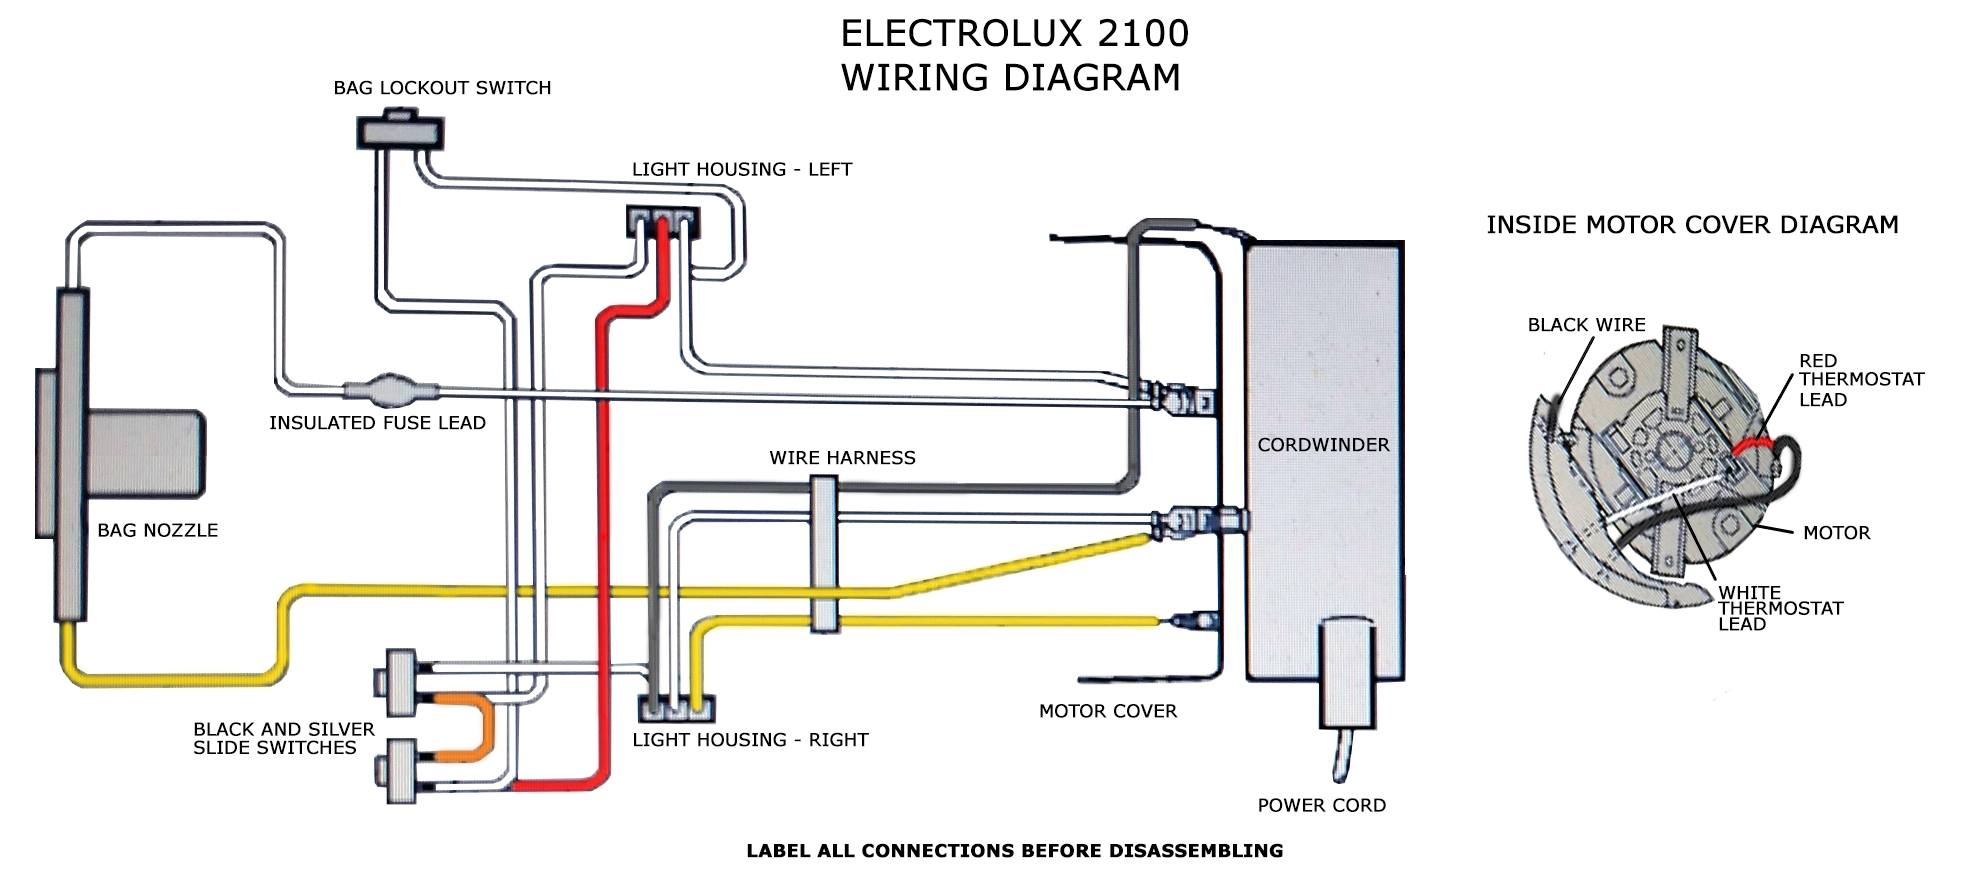 electrolux 2100 wiring diagram rh blog evacuumstore com vacuum cleaner circuit diagram vacuum cleaner parts diagram